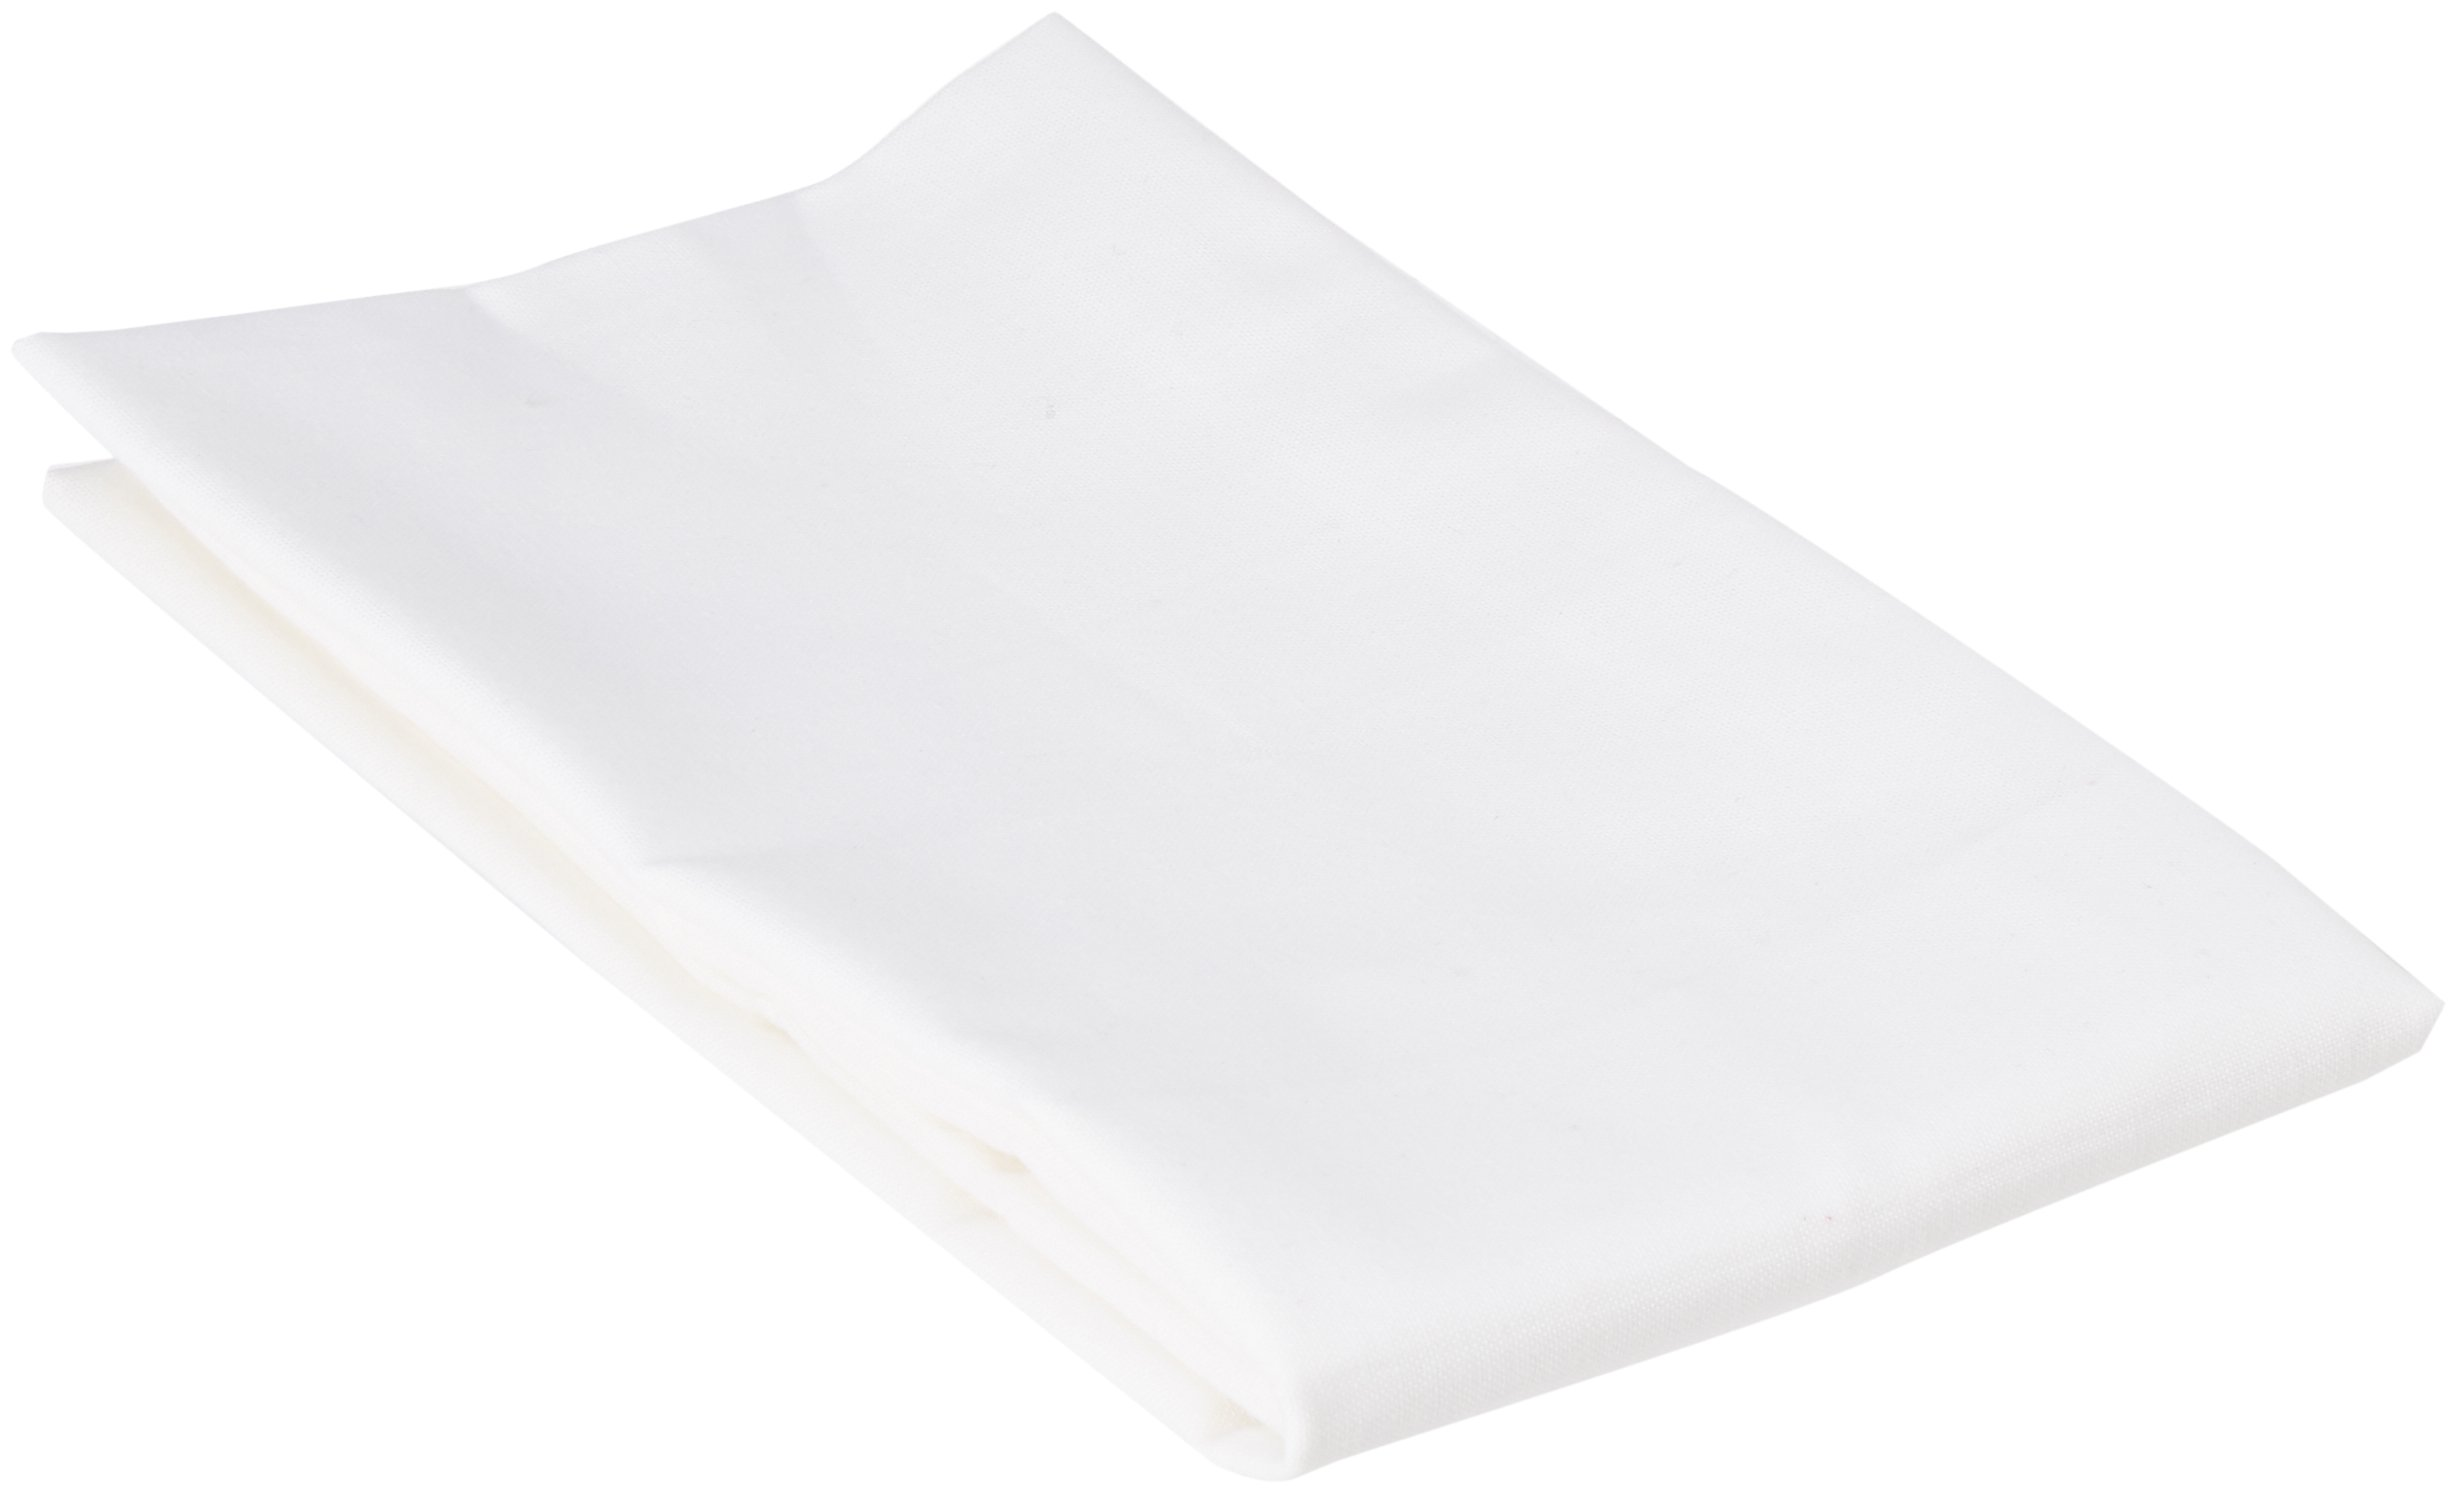 SheetWorld - Baby Pillow Case - Percale Pillow Case - Light Solids - White - Made In USA